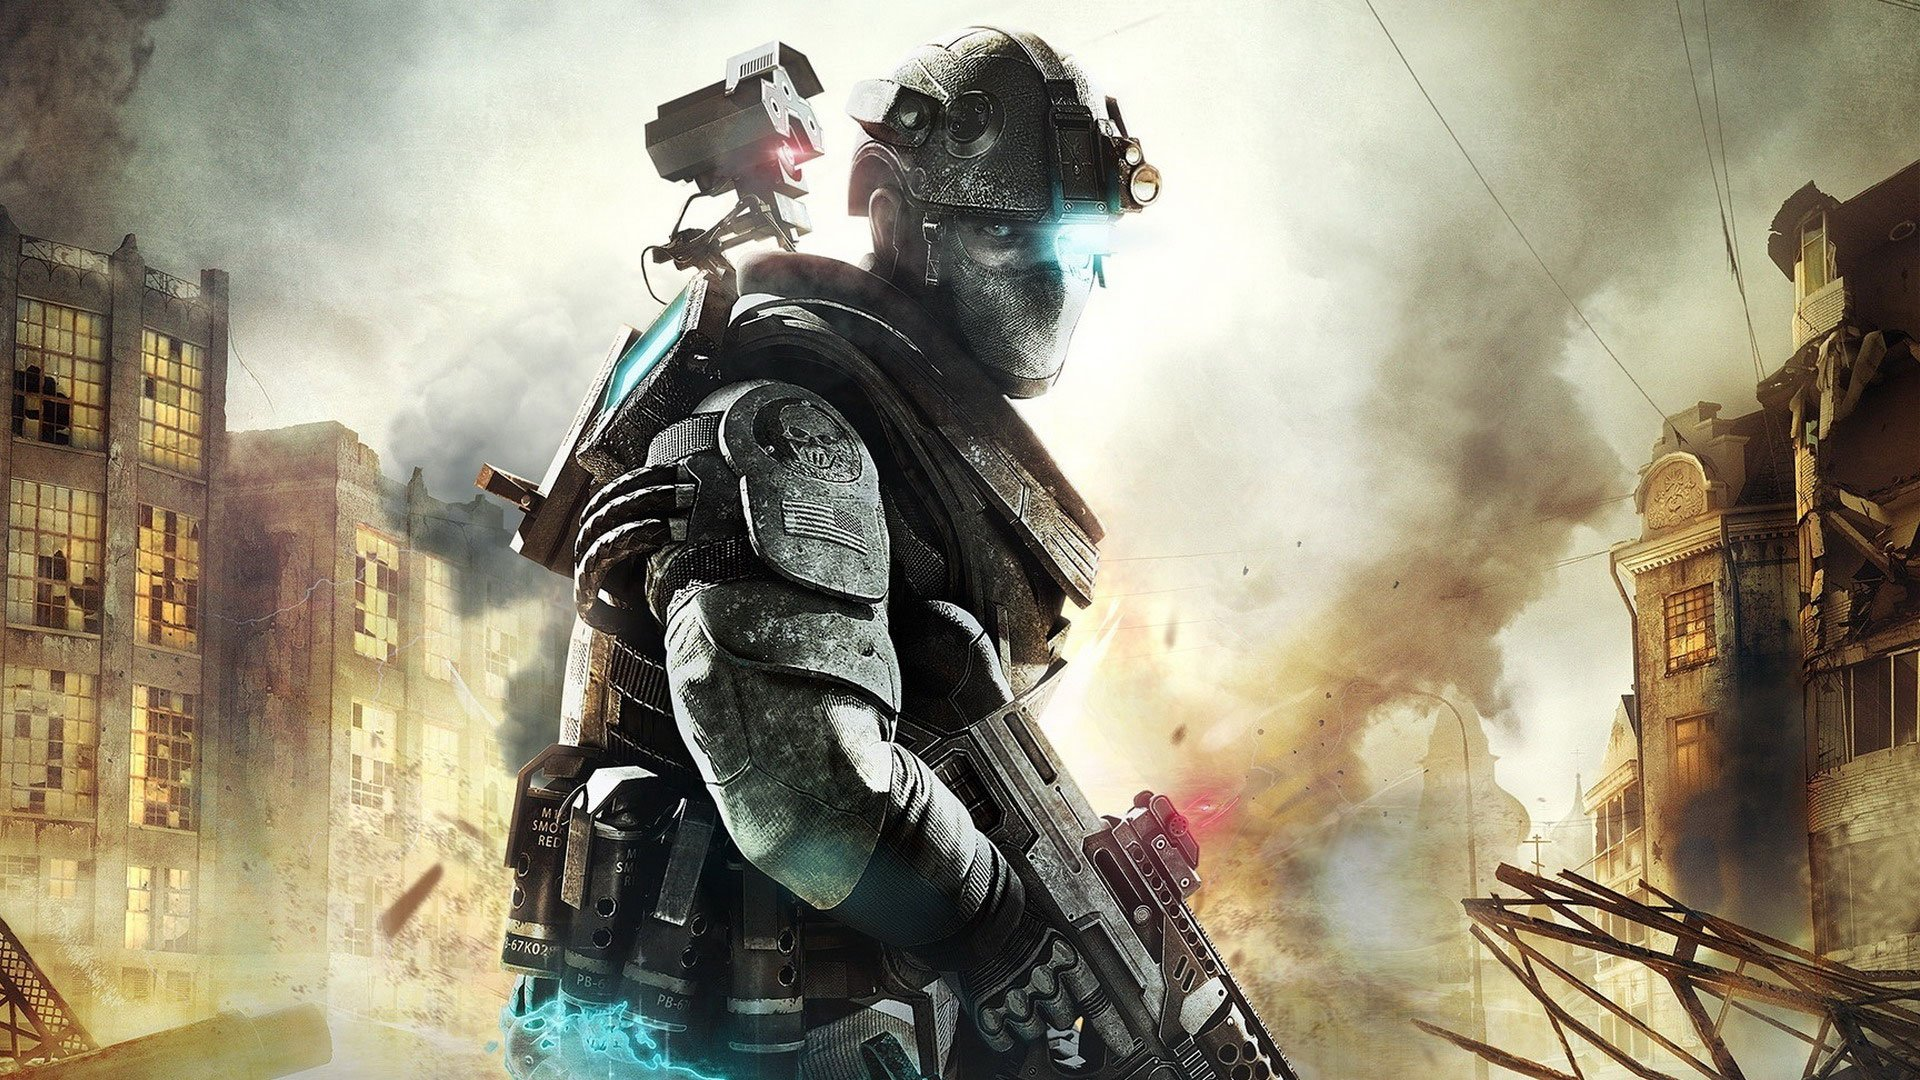 Ghost Recon Future Soldier Wallpapers in HD 1920x1080